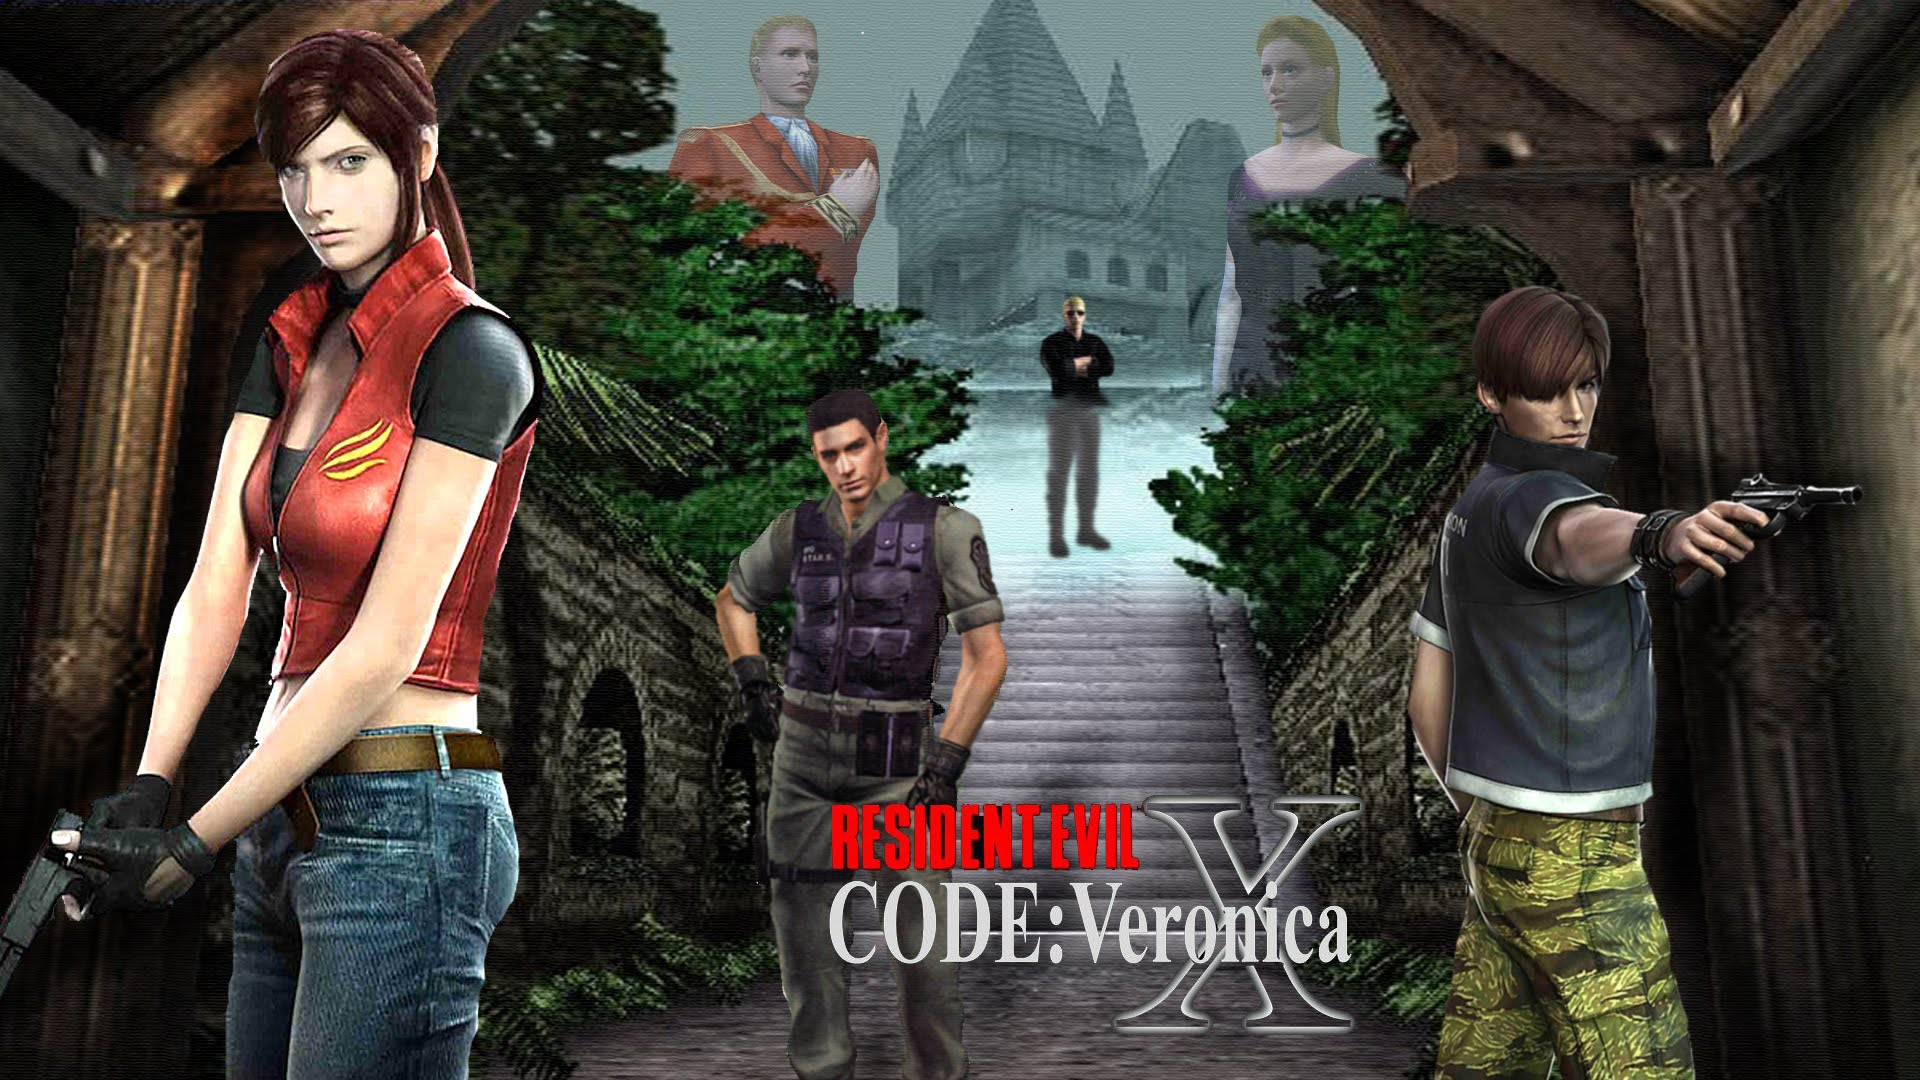 codeveronicabanner - Is Resident Evil: Code Veronica Coming to PlayStation 4?